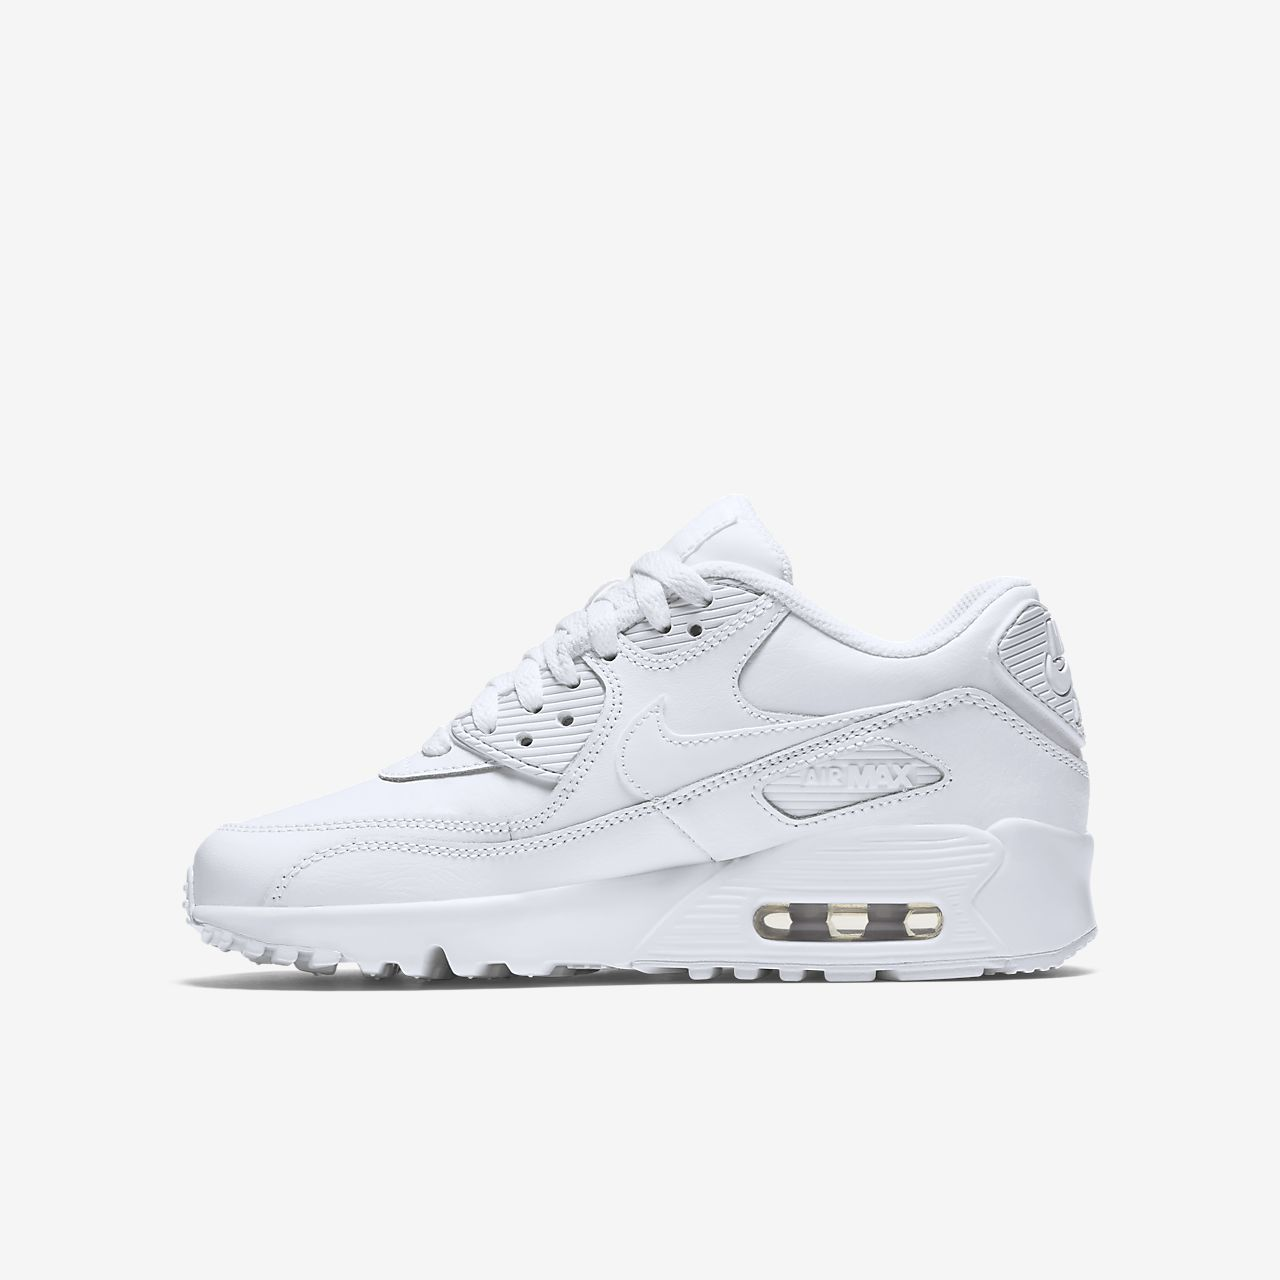 Nike Air Max 90 Leather Zapatillas - Niño/a. Nike.com ES